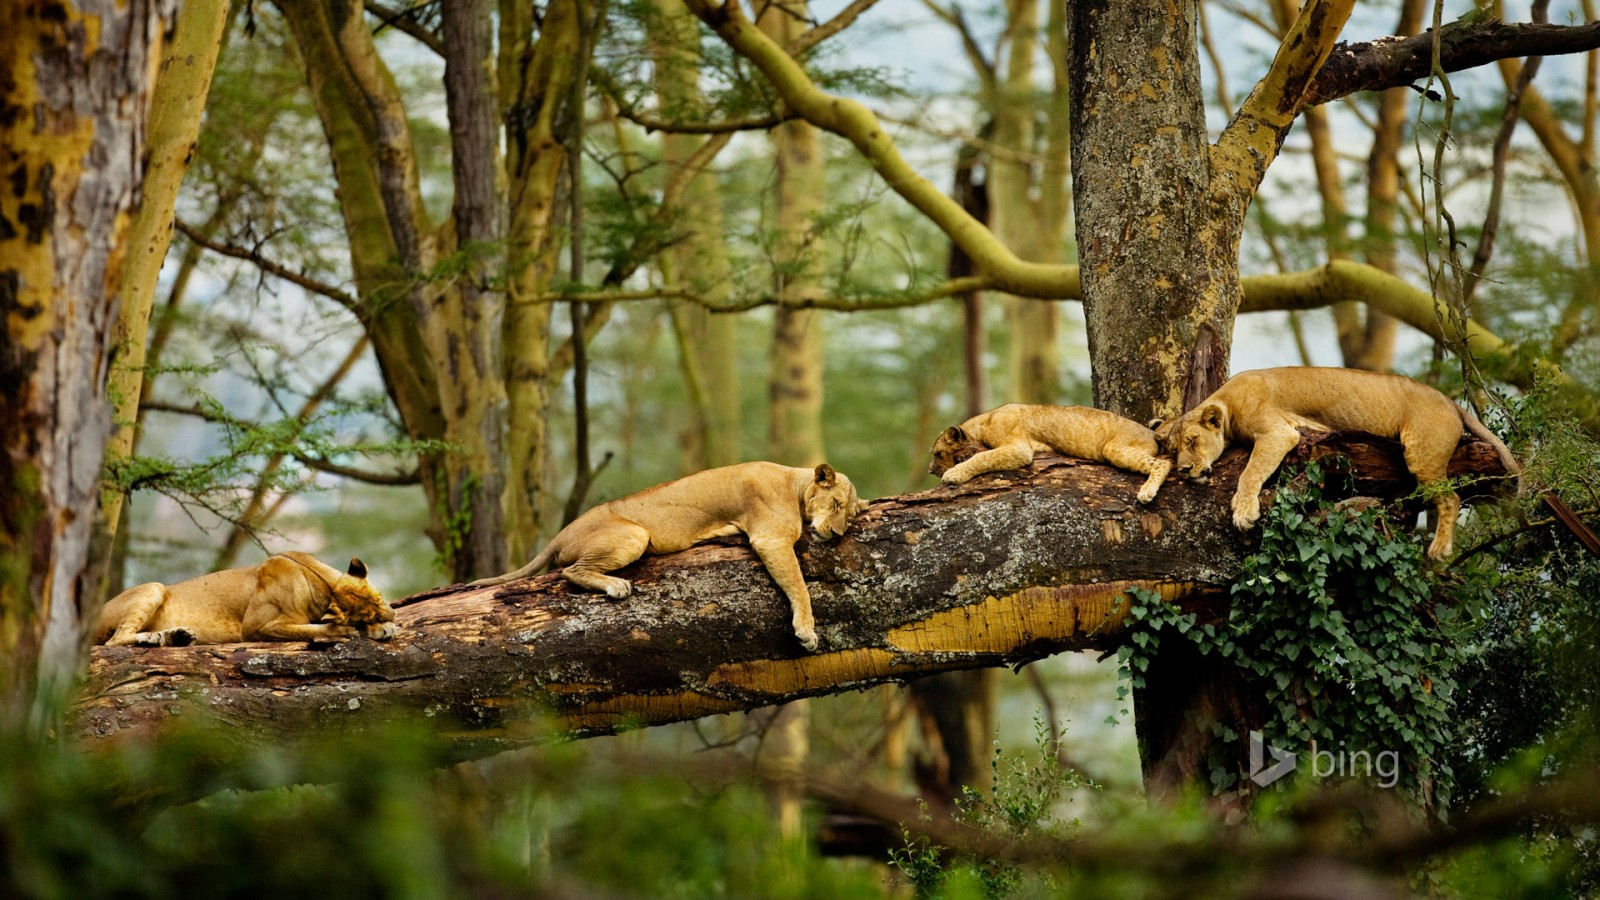 Cute Faith Wallpapers Sleeping Lions Wallpapers Hd Wallpapers Id 13968